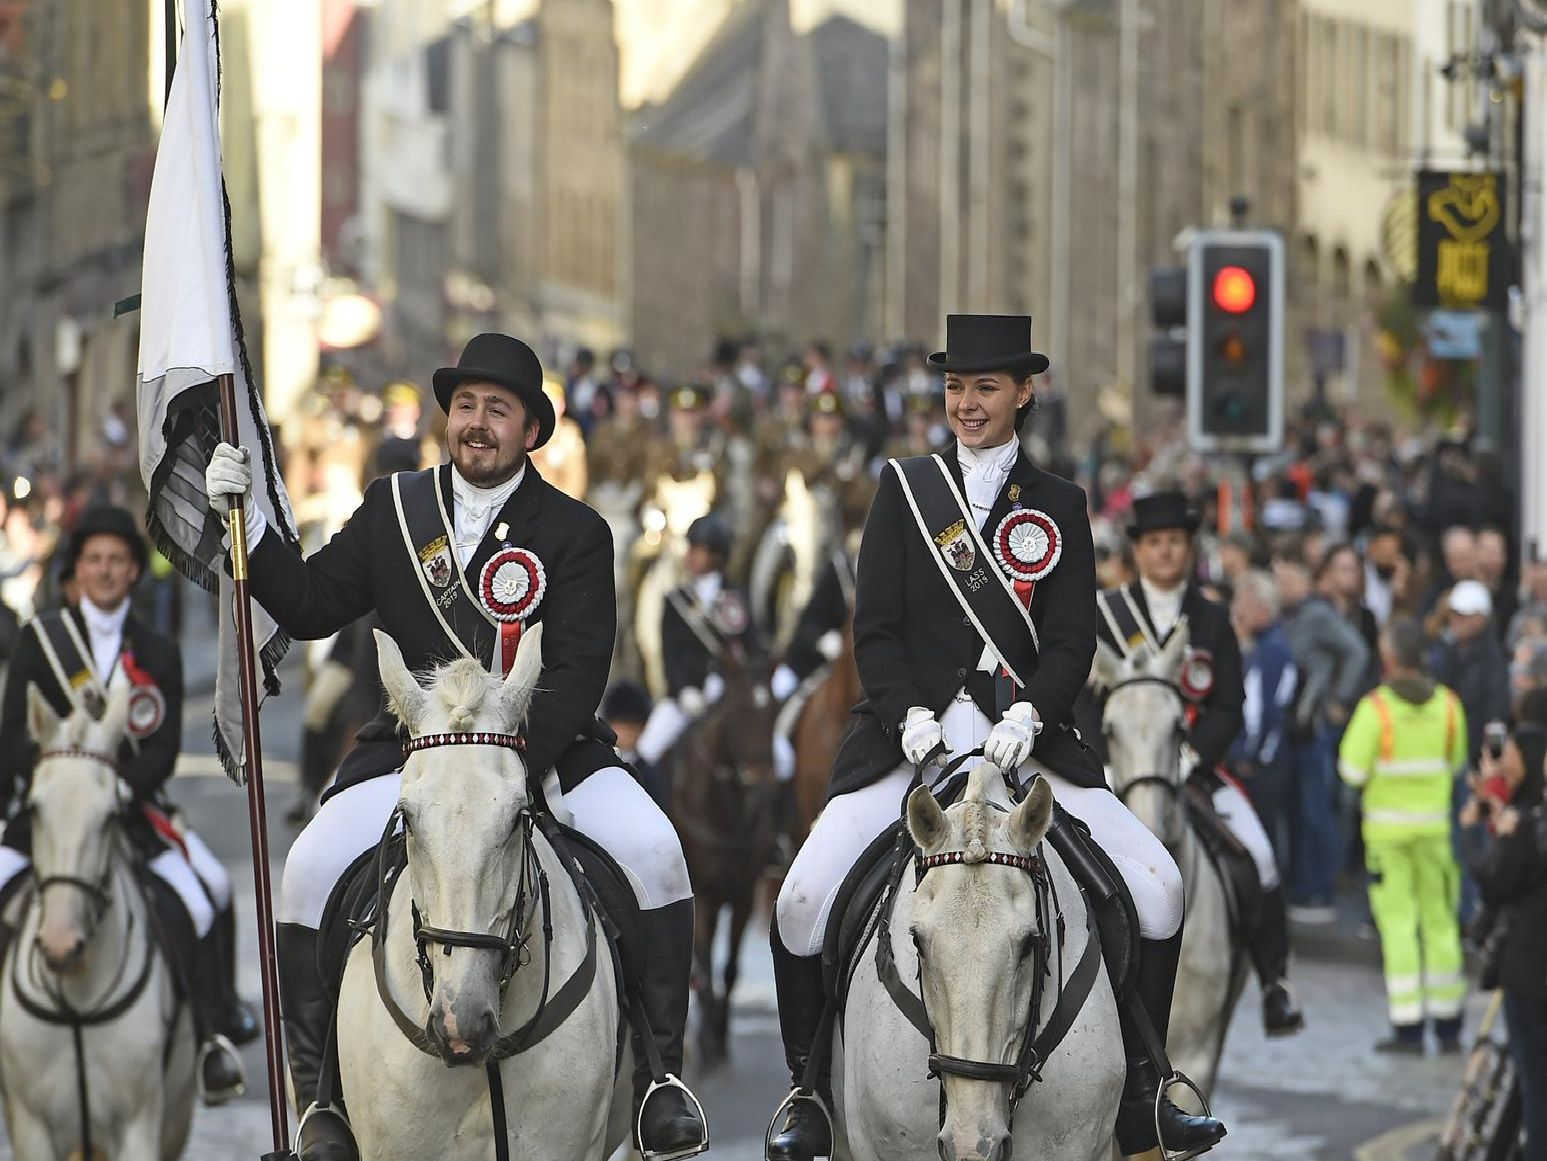 Sun shines on Edinburgh's annual Riding of the Marches